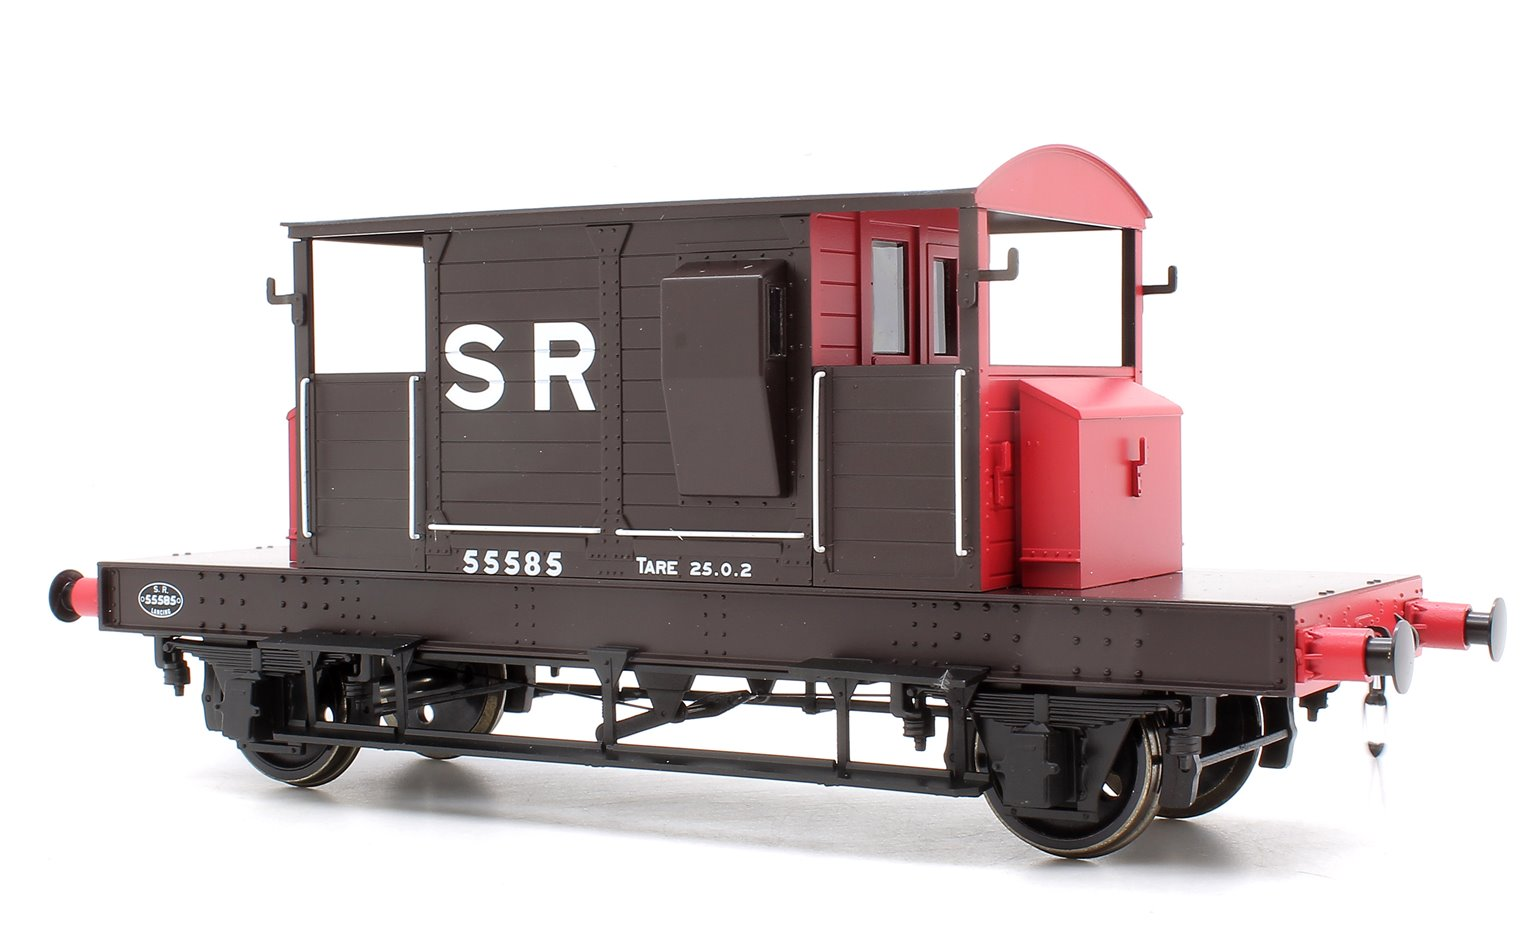 Pill Box Brake Van 55585 S R Brown/Red Large letters (Even Plank)